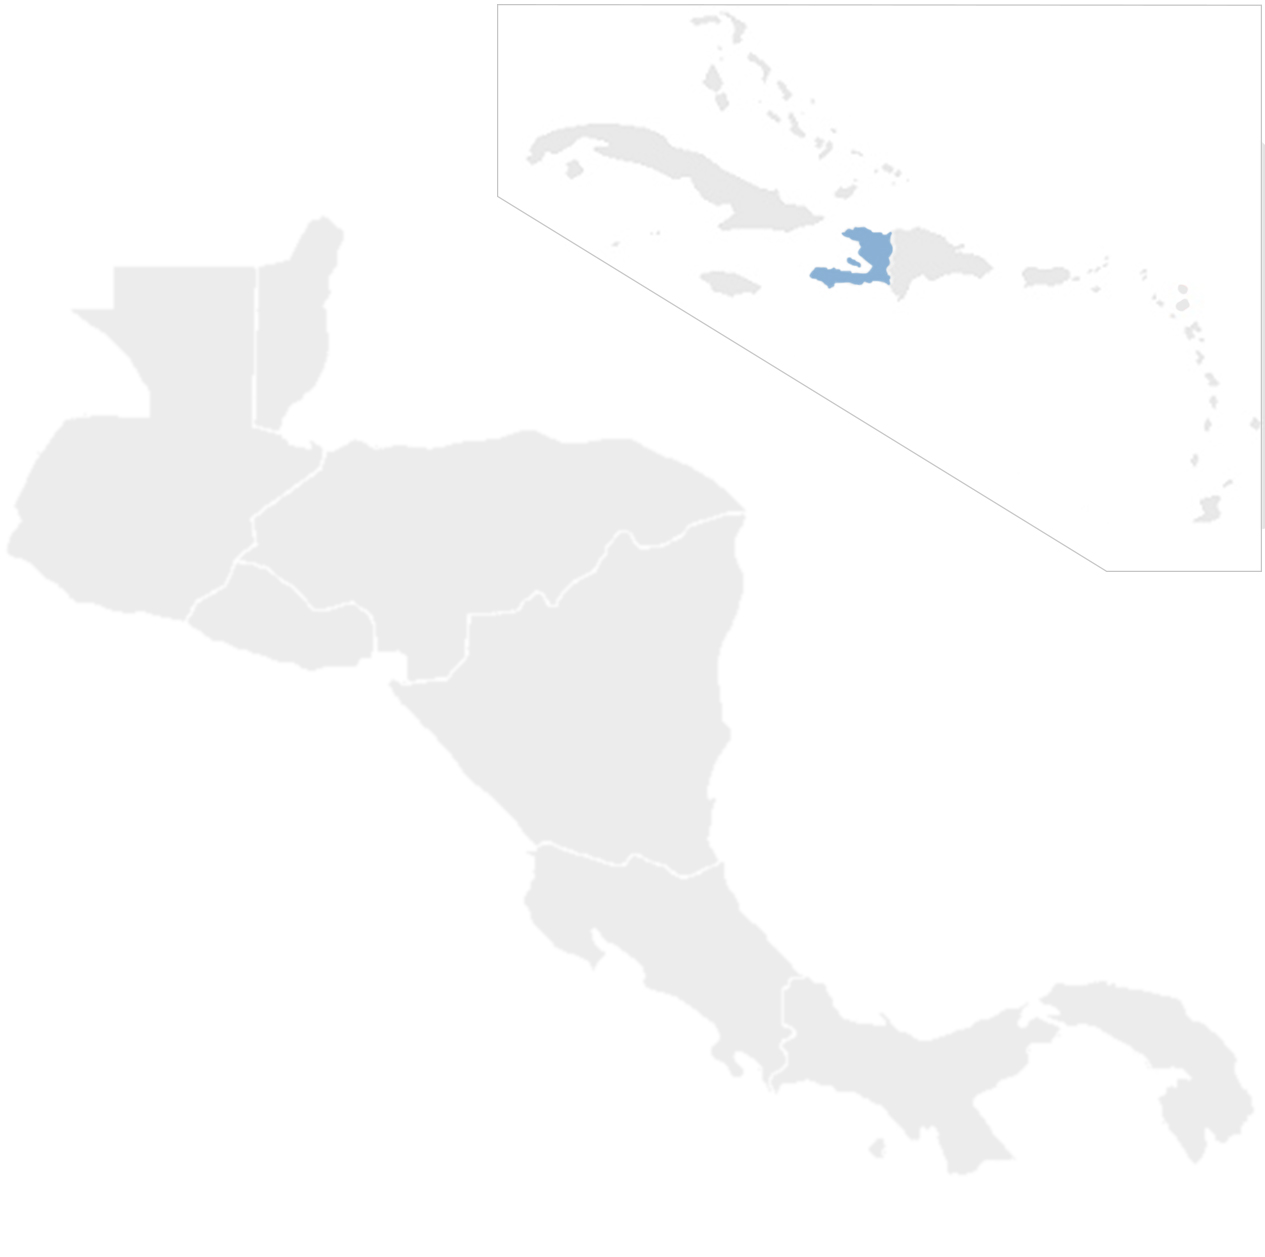 Gray map of Central America and the Caribbean with Haiti in blue